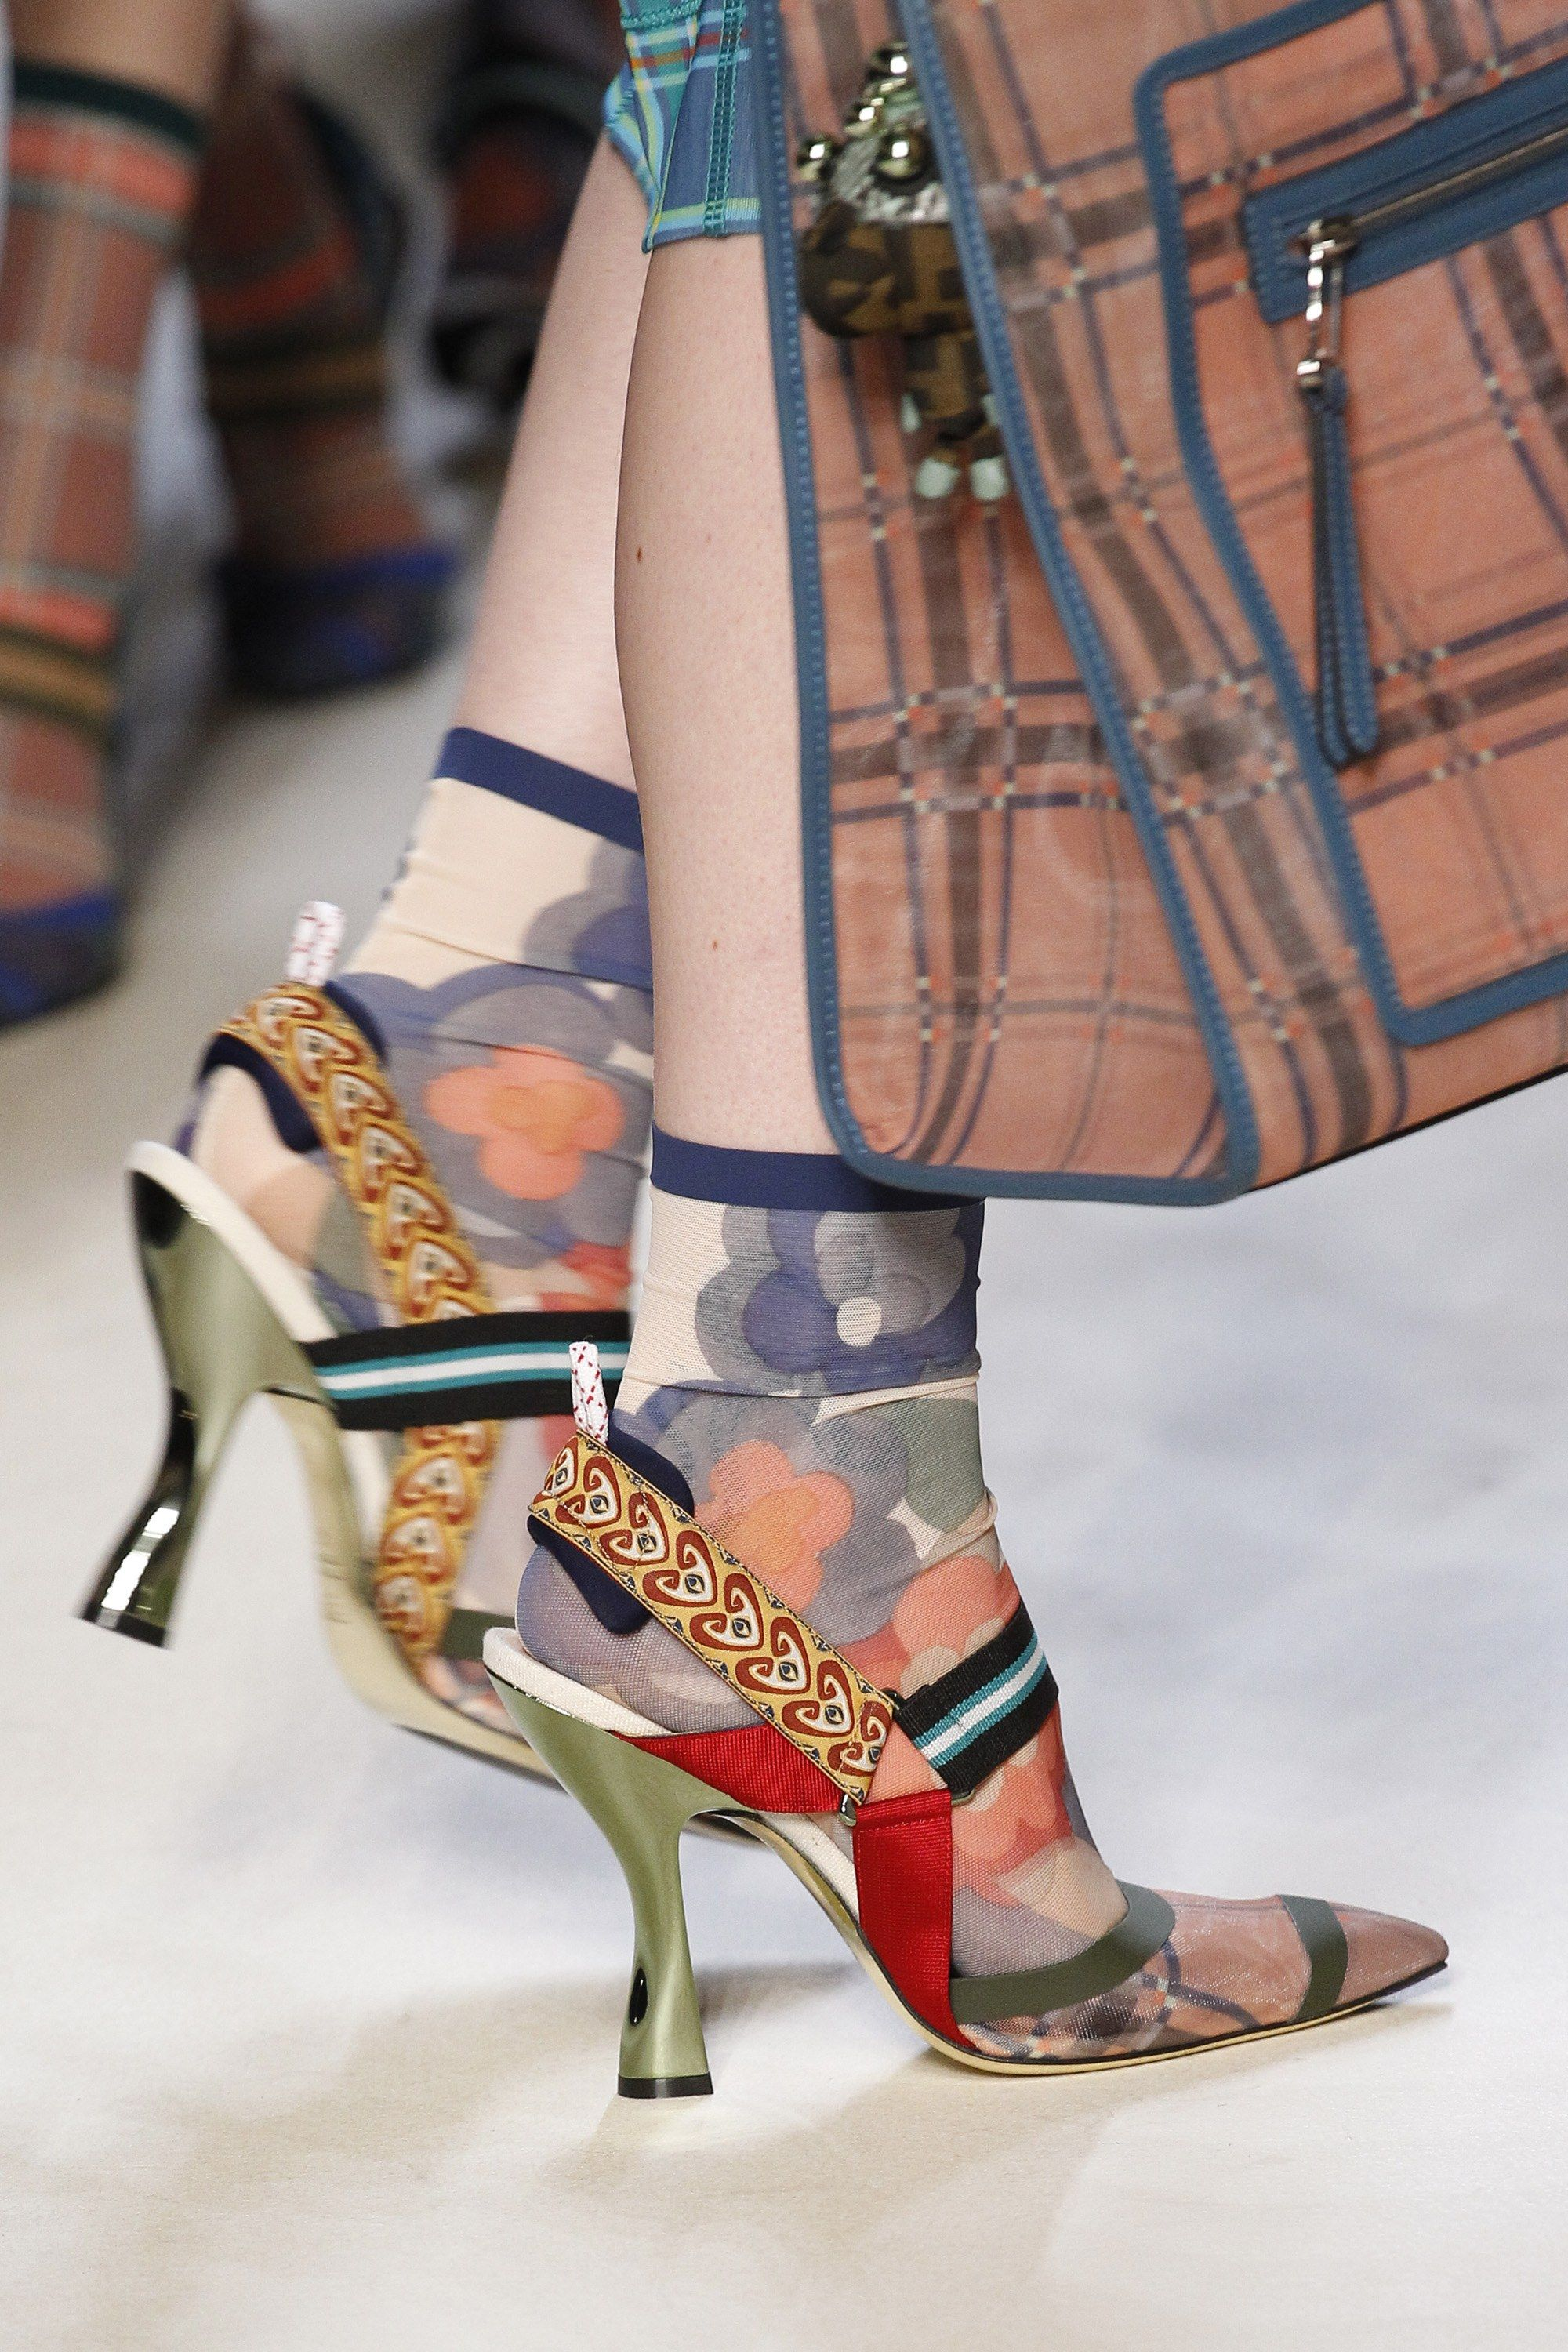 81faa3d0c70 See detail photos for Fendi Spring 2018 Ready-to-Wear collection.